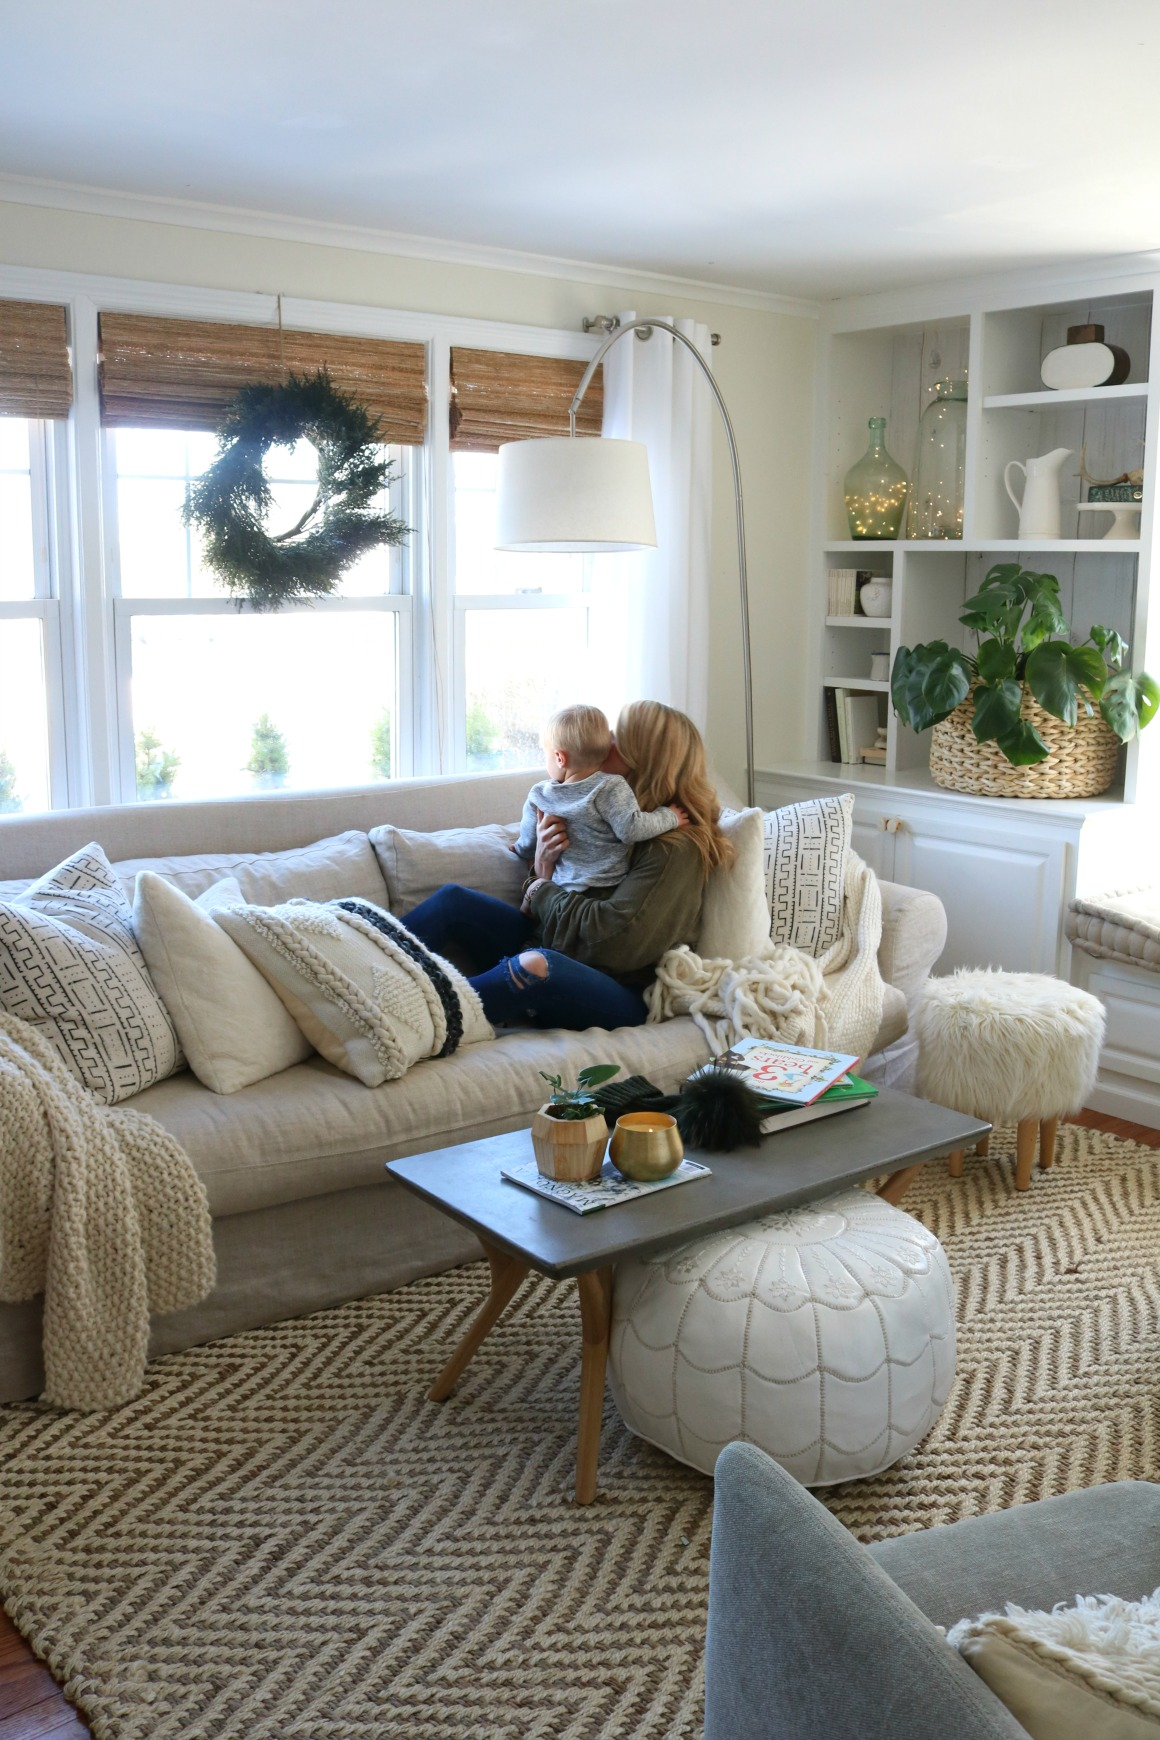 Top 5 Most Bang for Your Buck in your Home